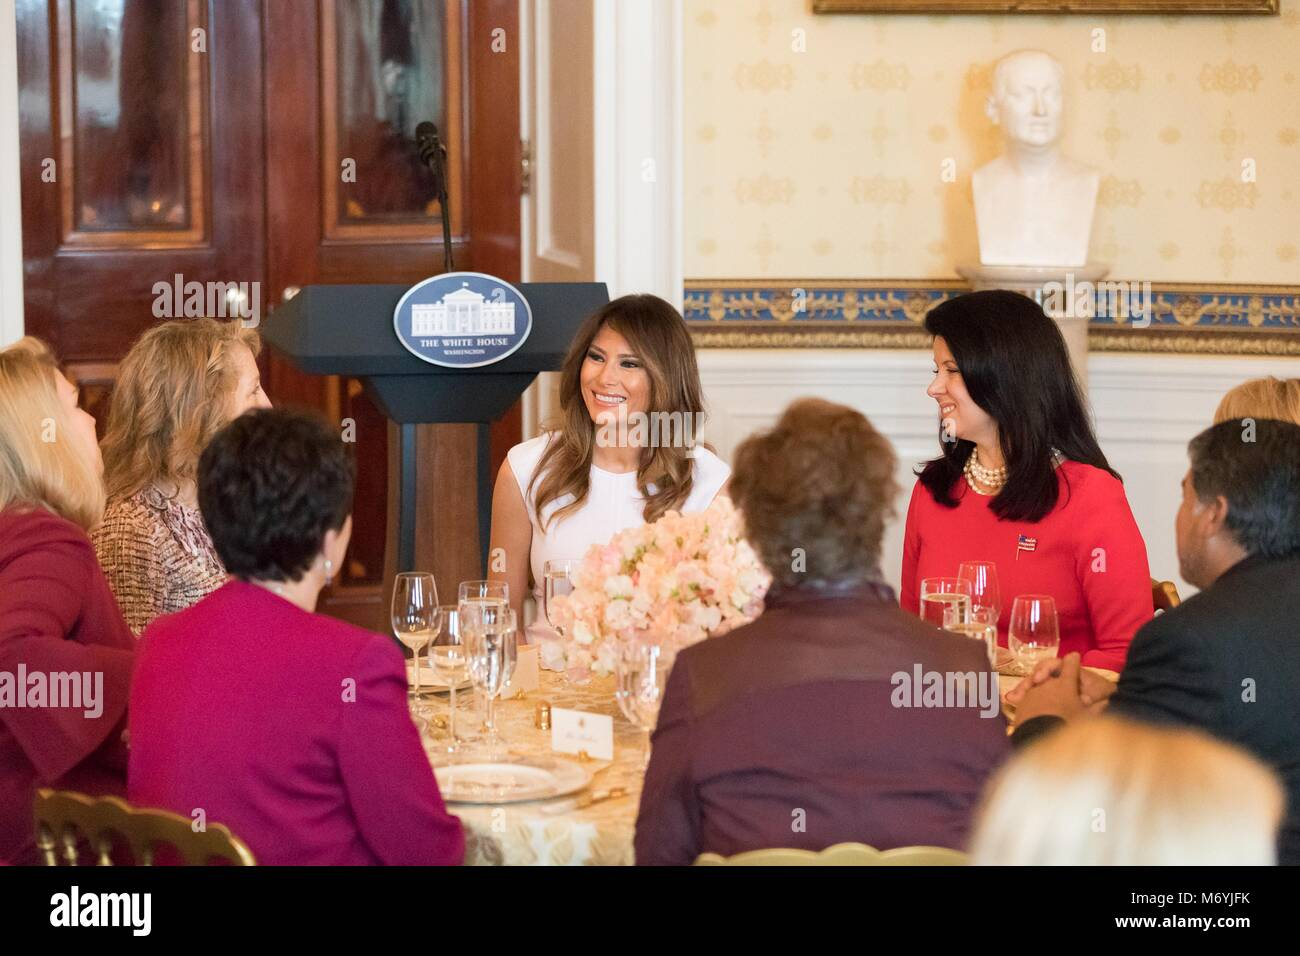 U.S First Lady Melania Trump, center, hosts a luncheon for spouses of Governors at the White House February 26, Stock Photo